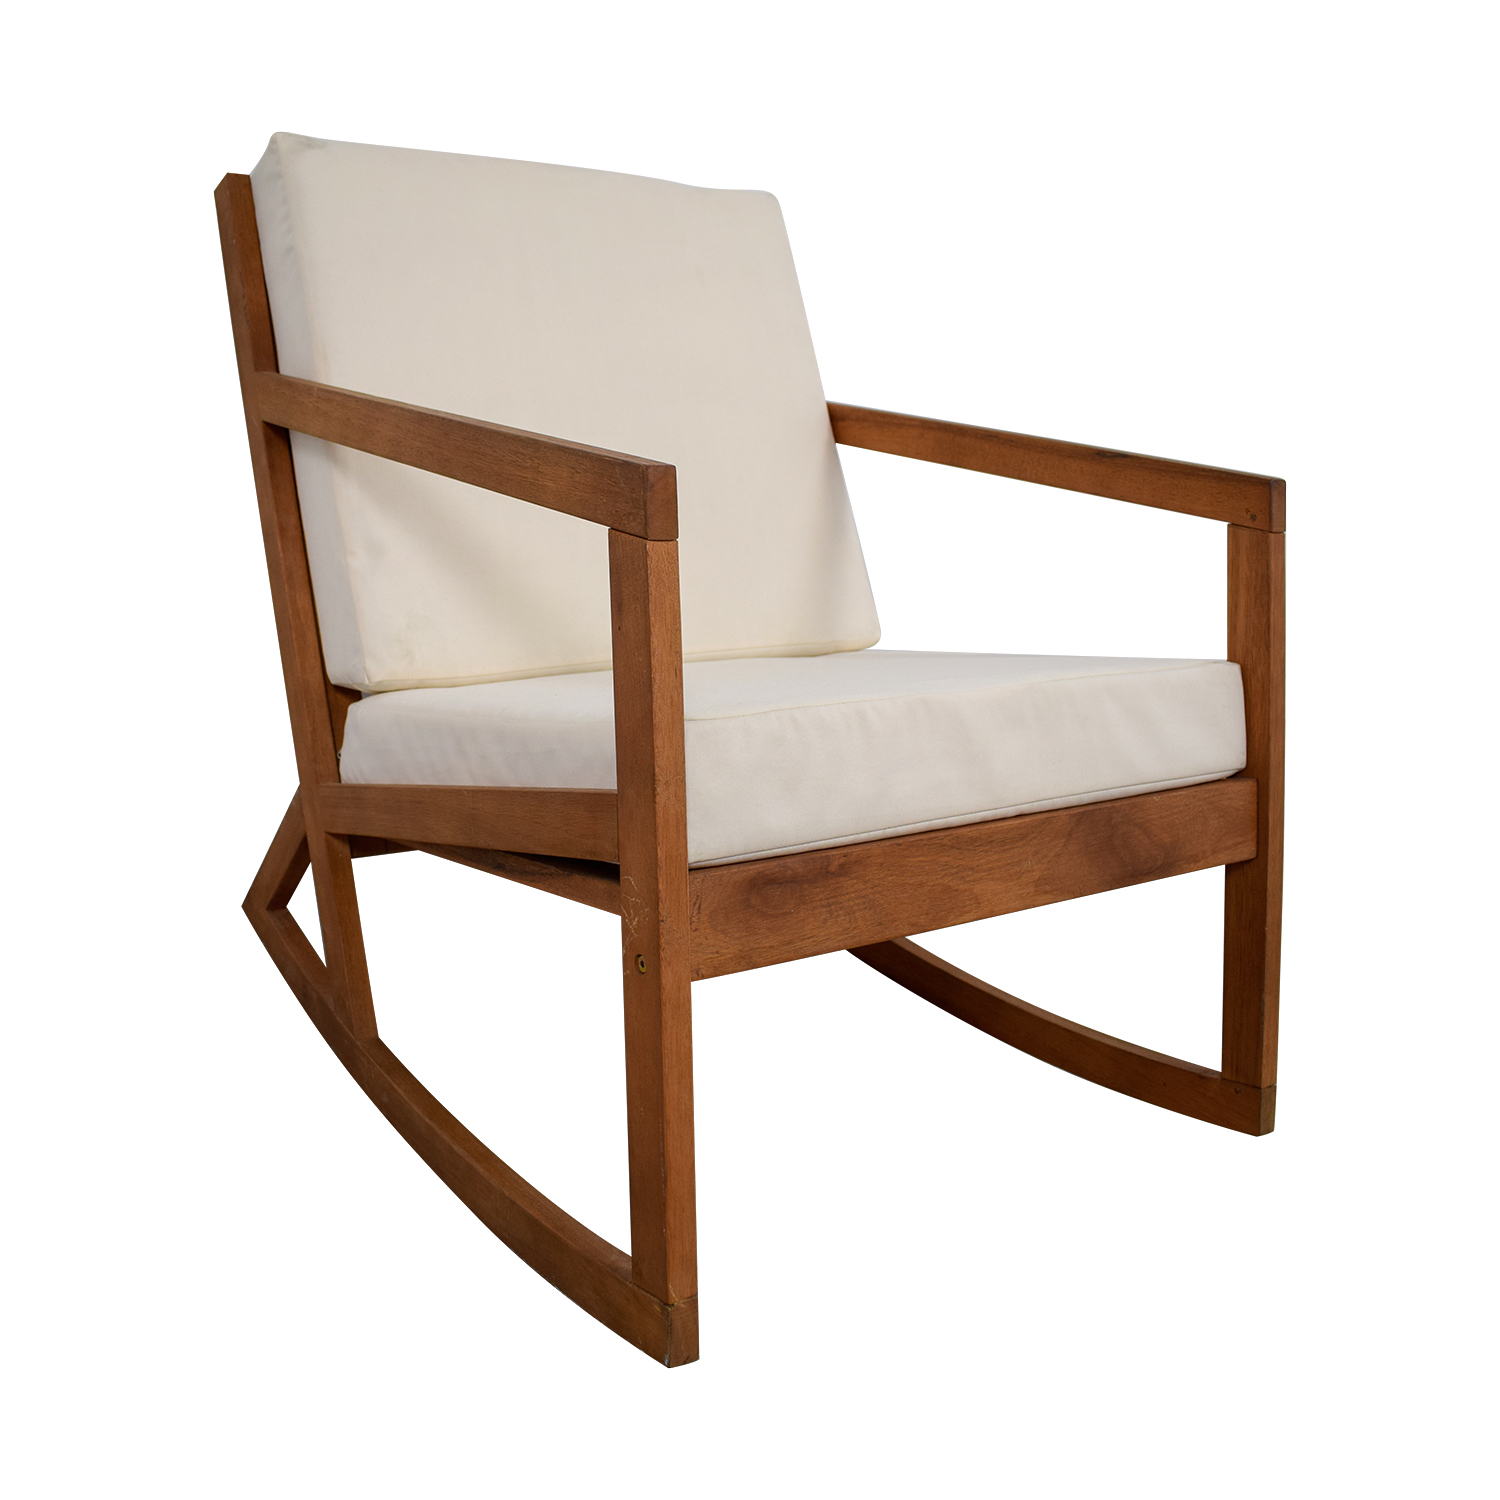 Safavieh White Upholstered Wood Rocking Chair sale